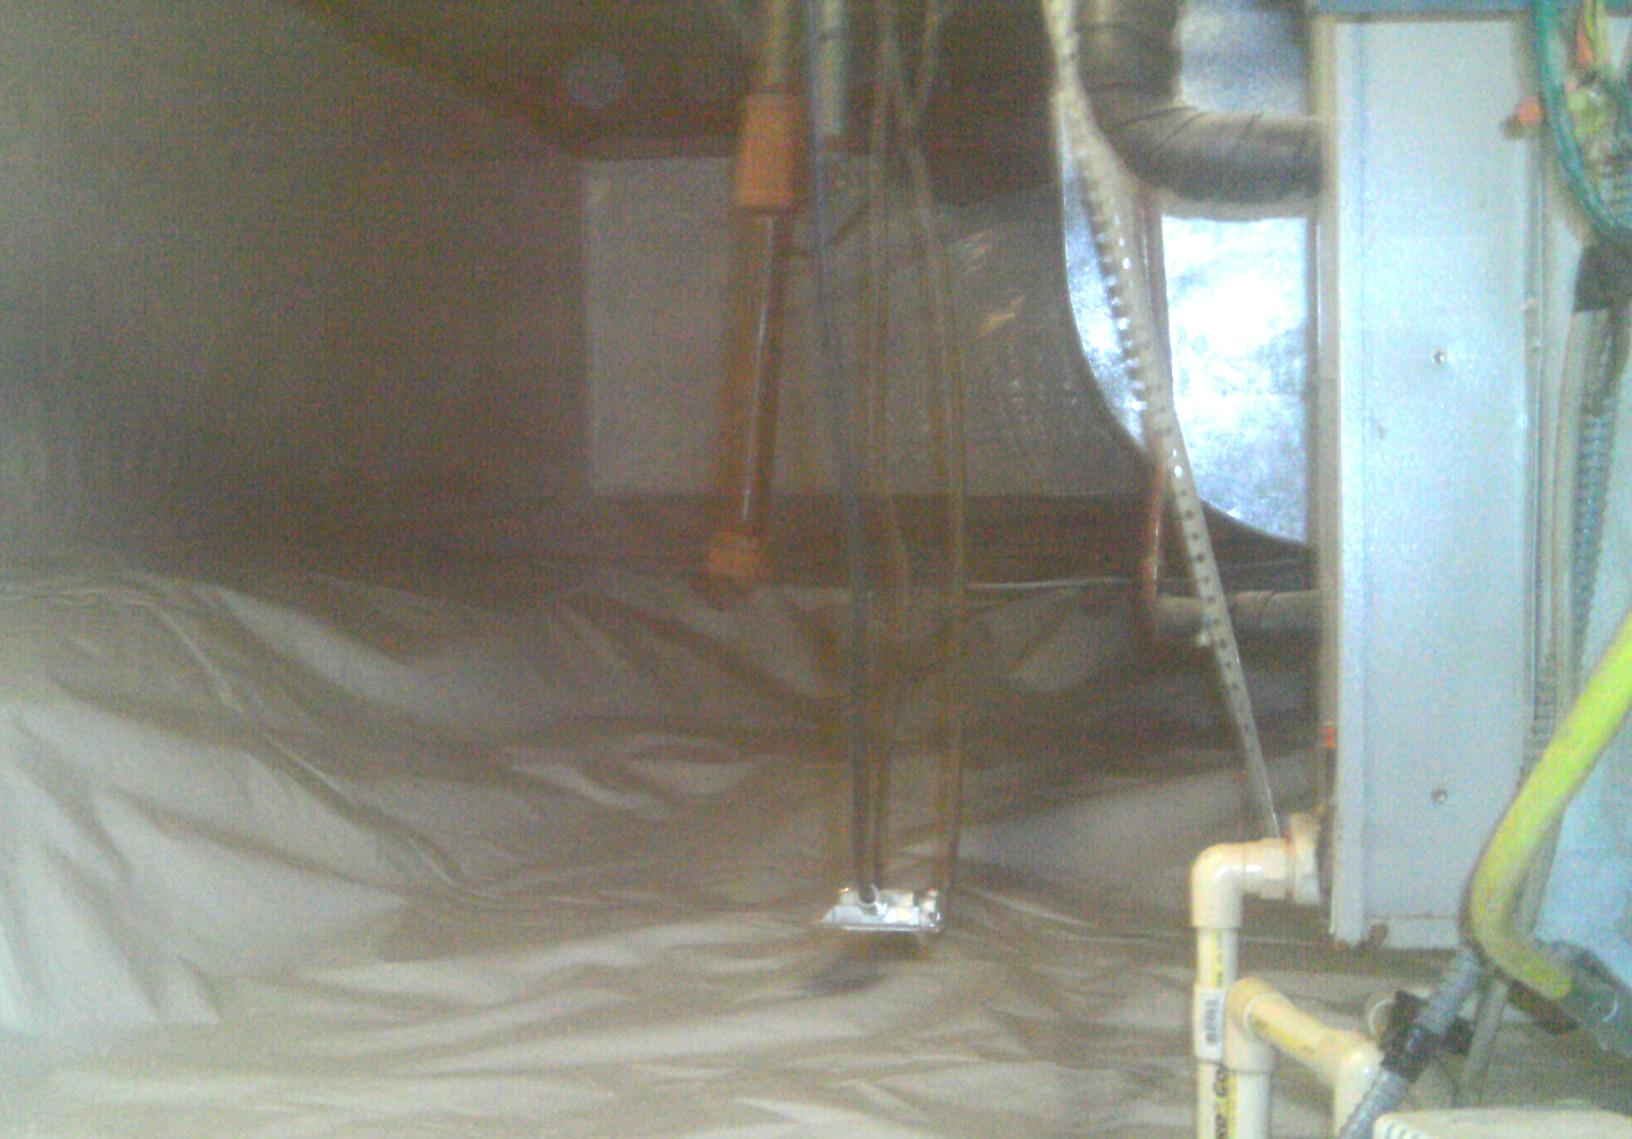 The crawl space was properly encapsulated from the ground to the top of the crawl space walls.